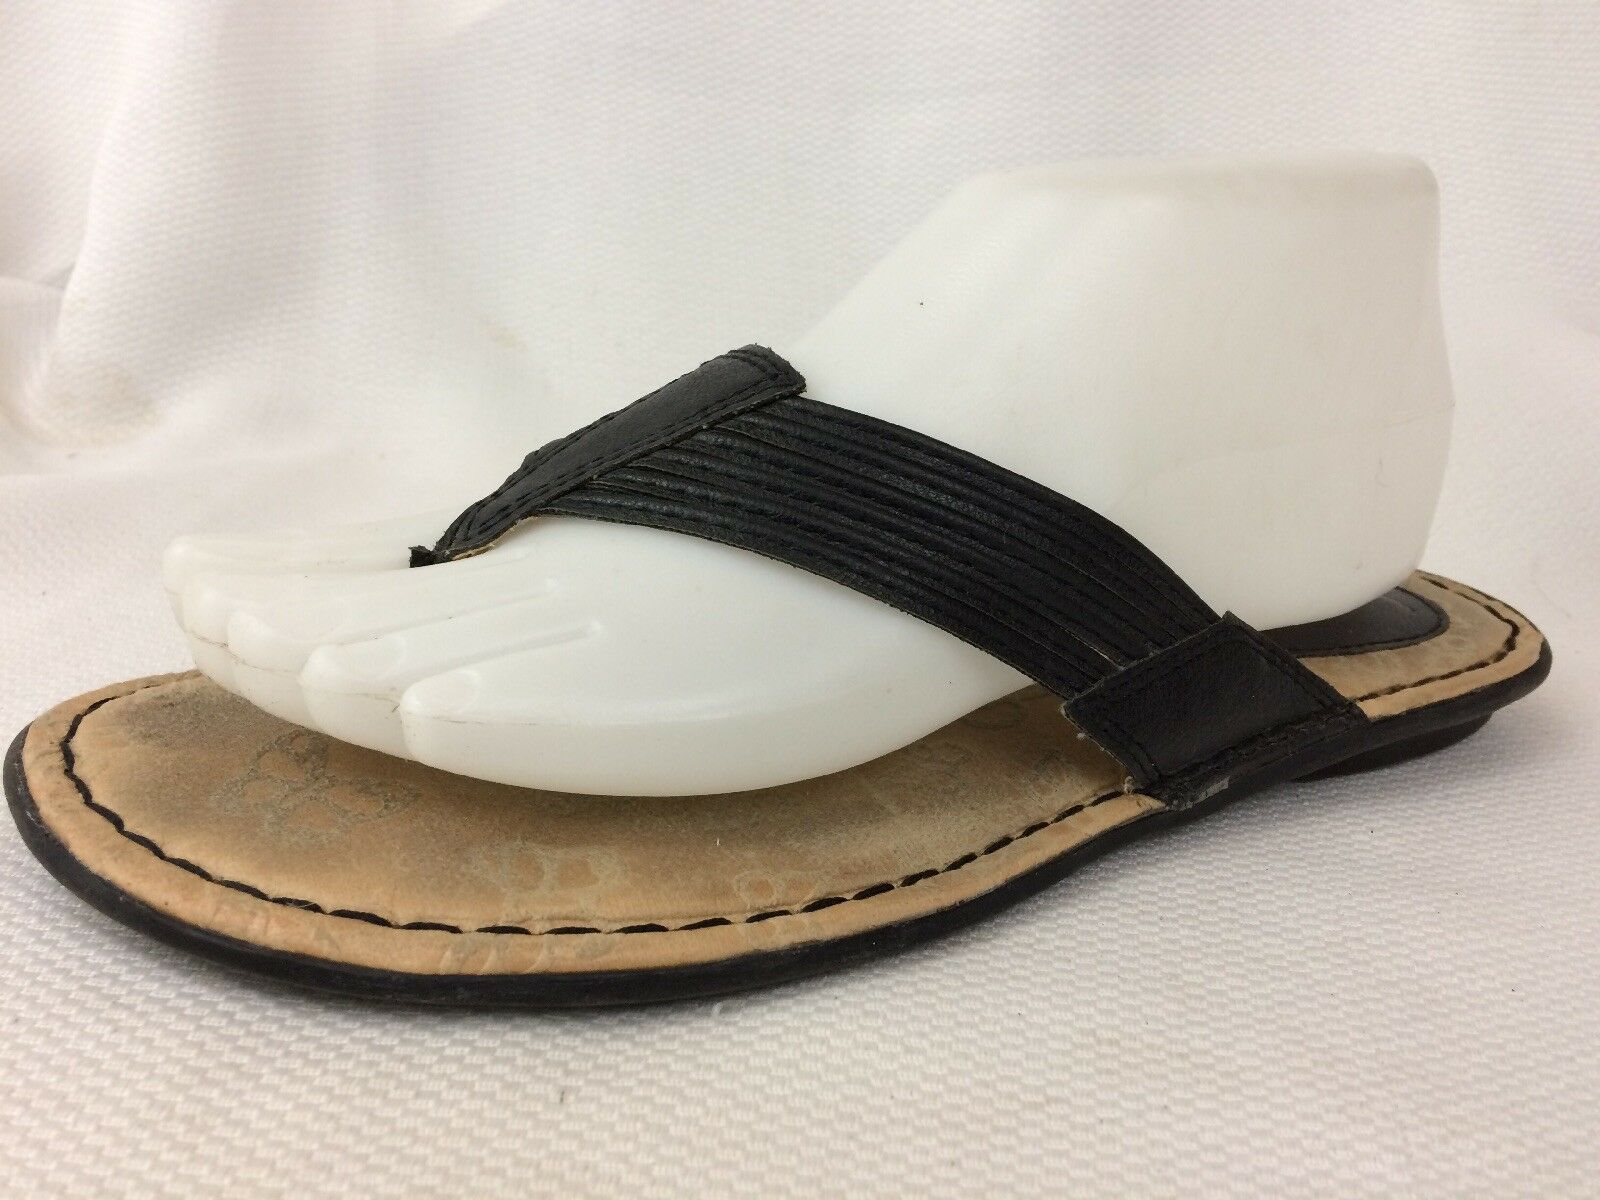 Born Womens 8 Med Thong Sandals Strappy Black Leather shoes Wedge Heel Flip Flop